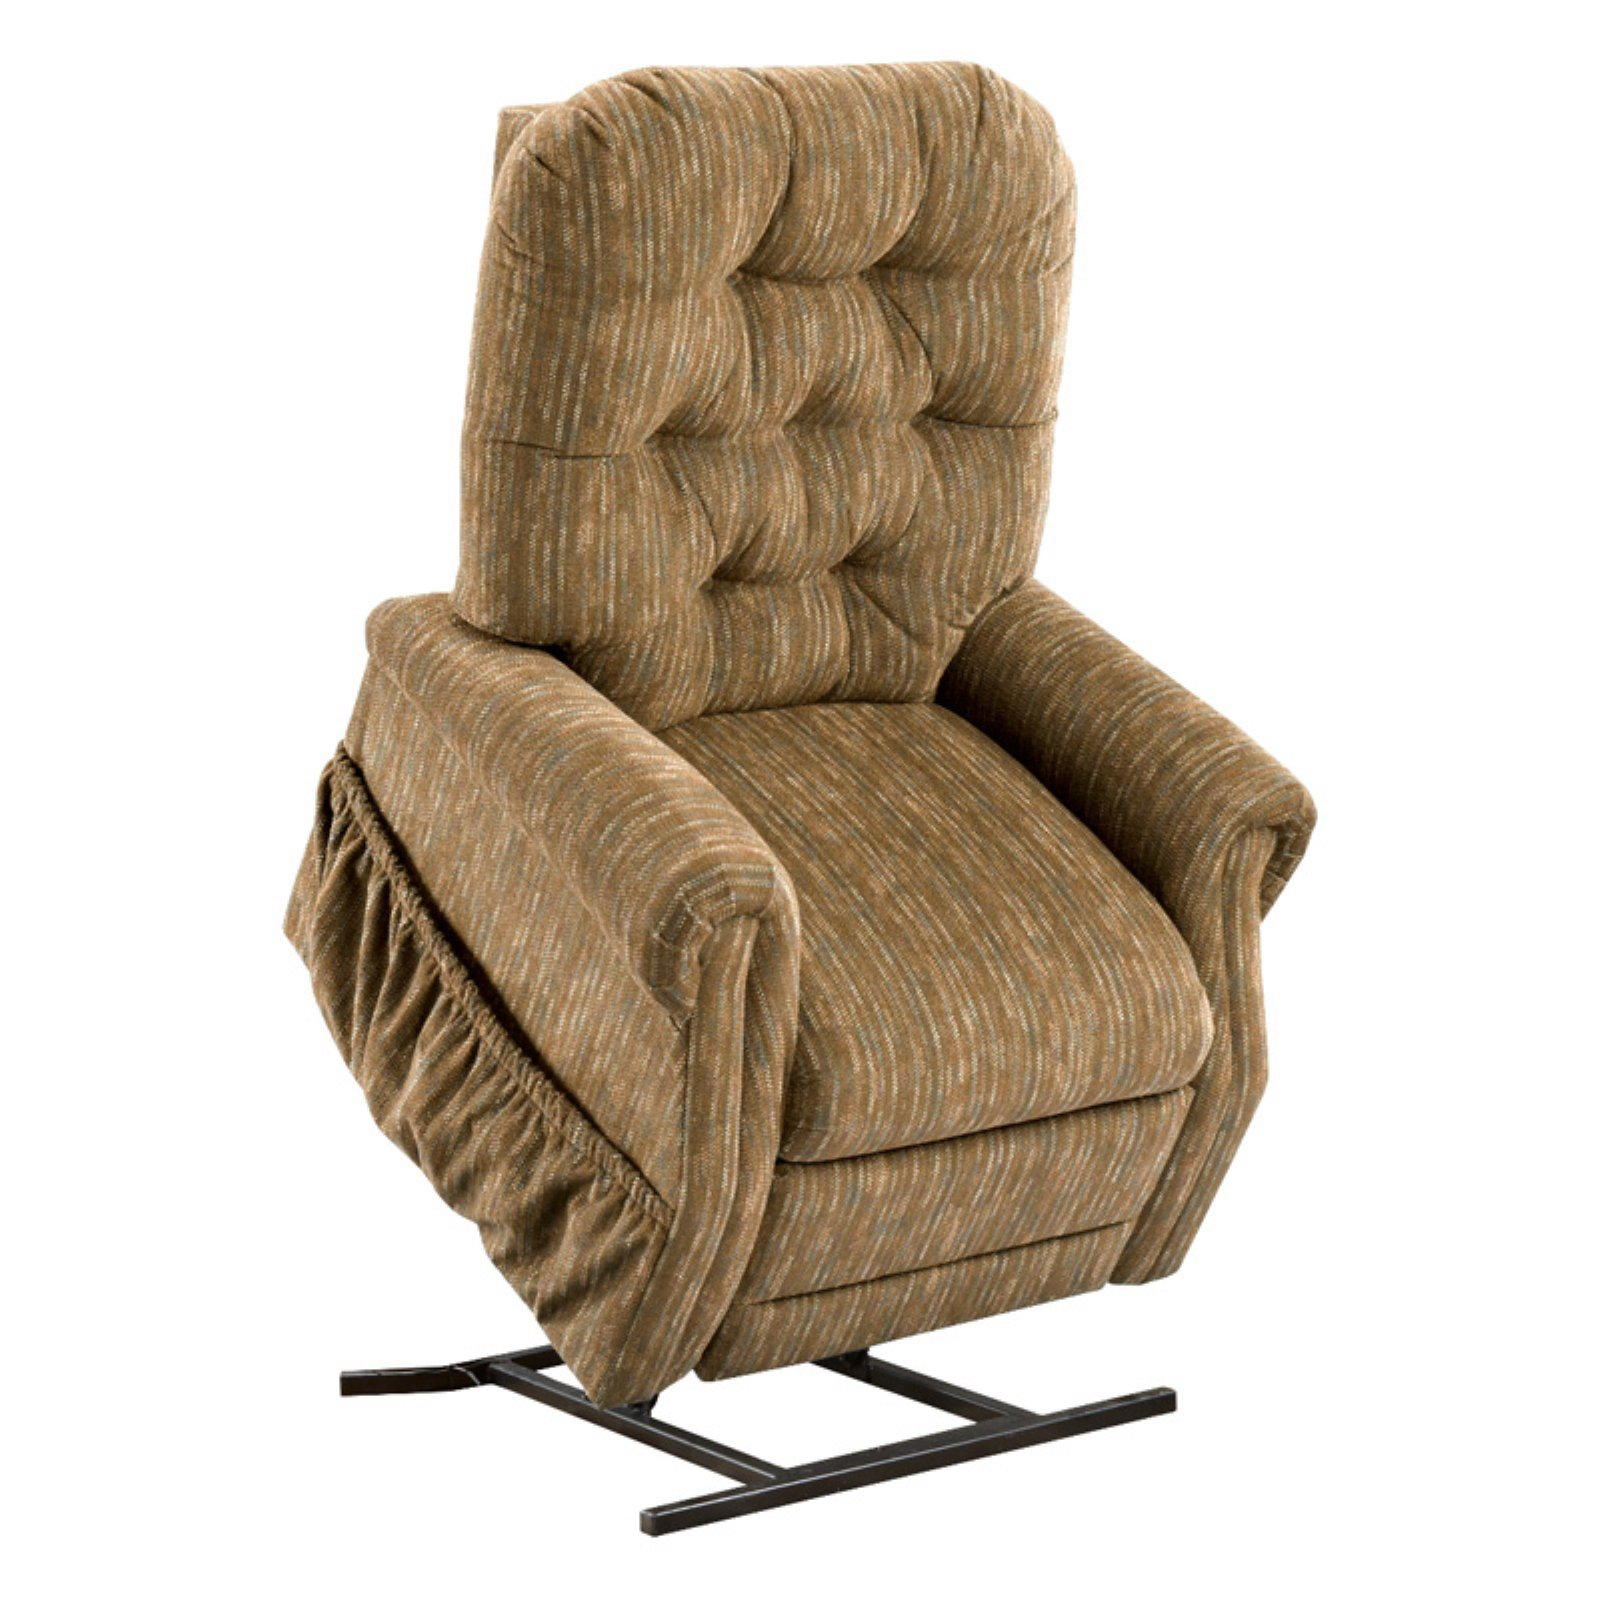 lift chairs walmart nichols and stone dining med aaron recliner